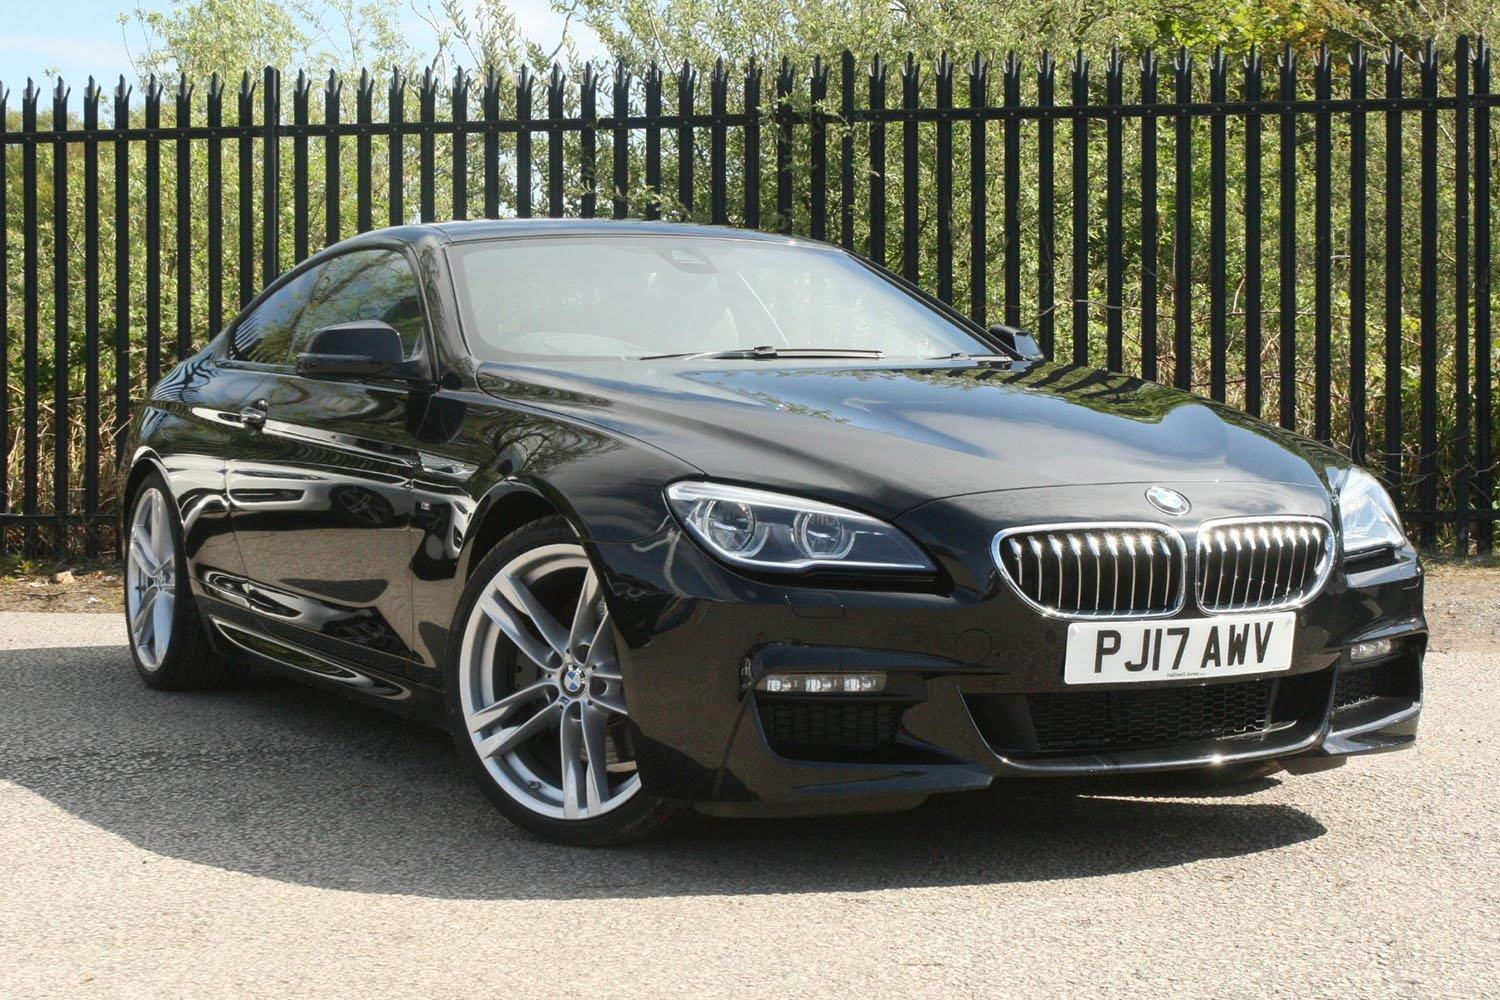 BMW 6 Series Coupé PJ17AWV - Image 5